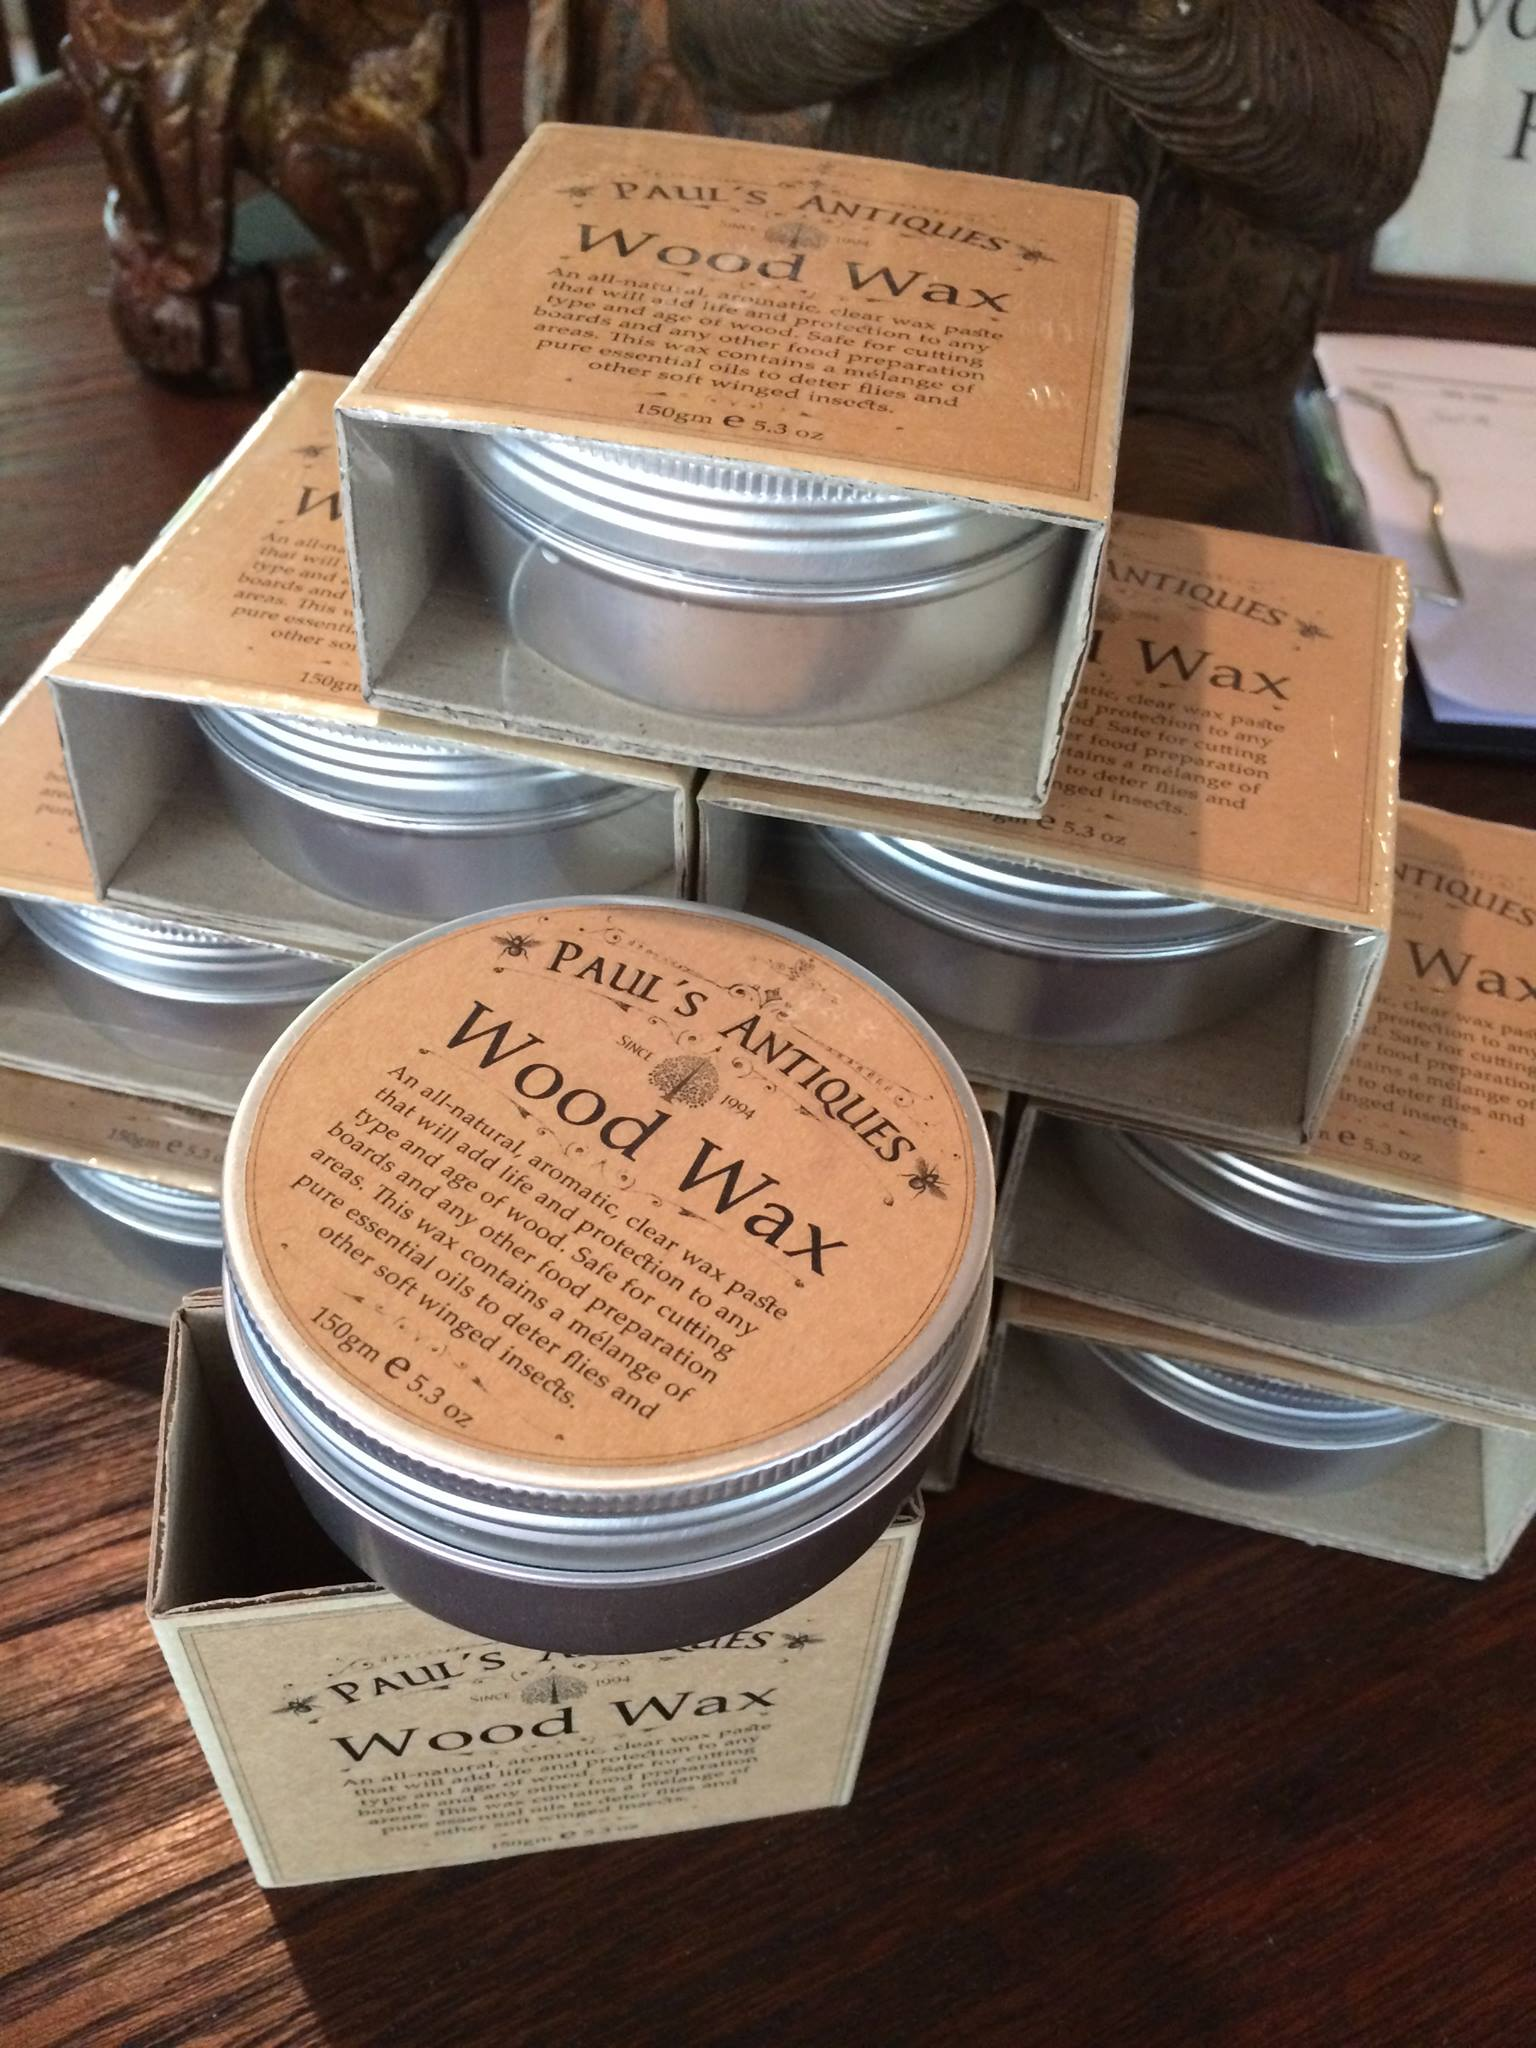 Paul's Antiques Natural Wood Wax